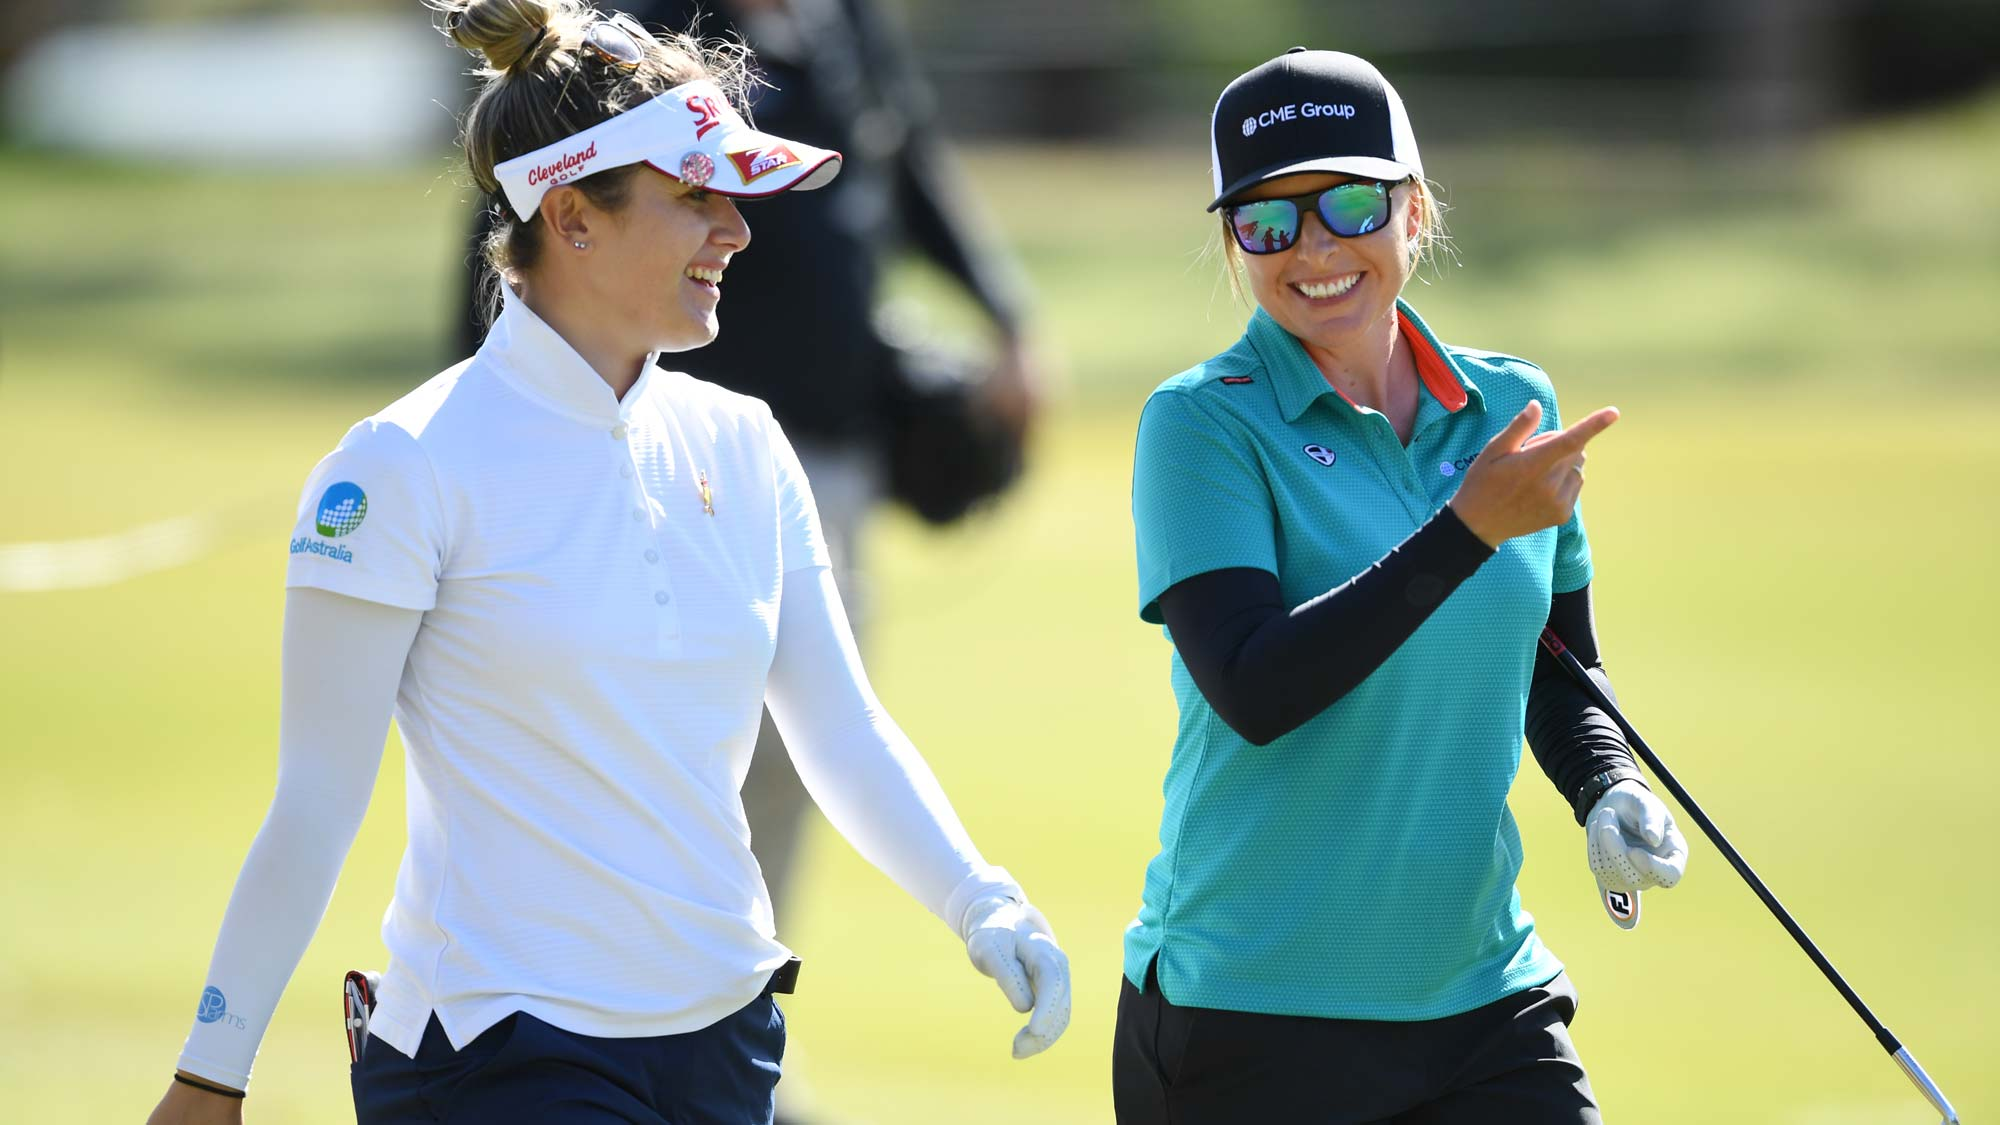 Kemp And Green Lead The Way At 2019 Isps Handa Womens Australian Open Lpga Ladies Professional Golf Association